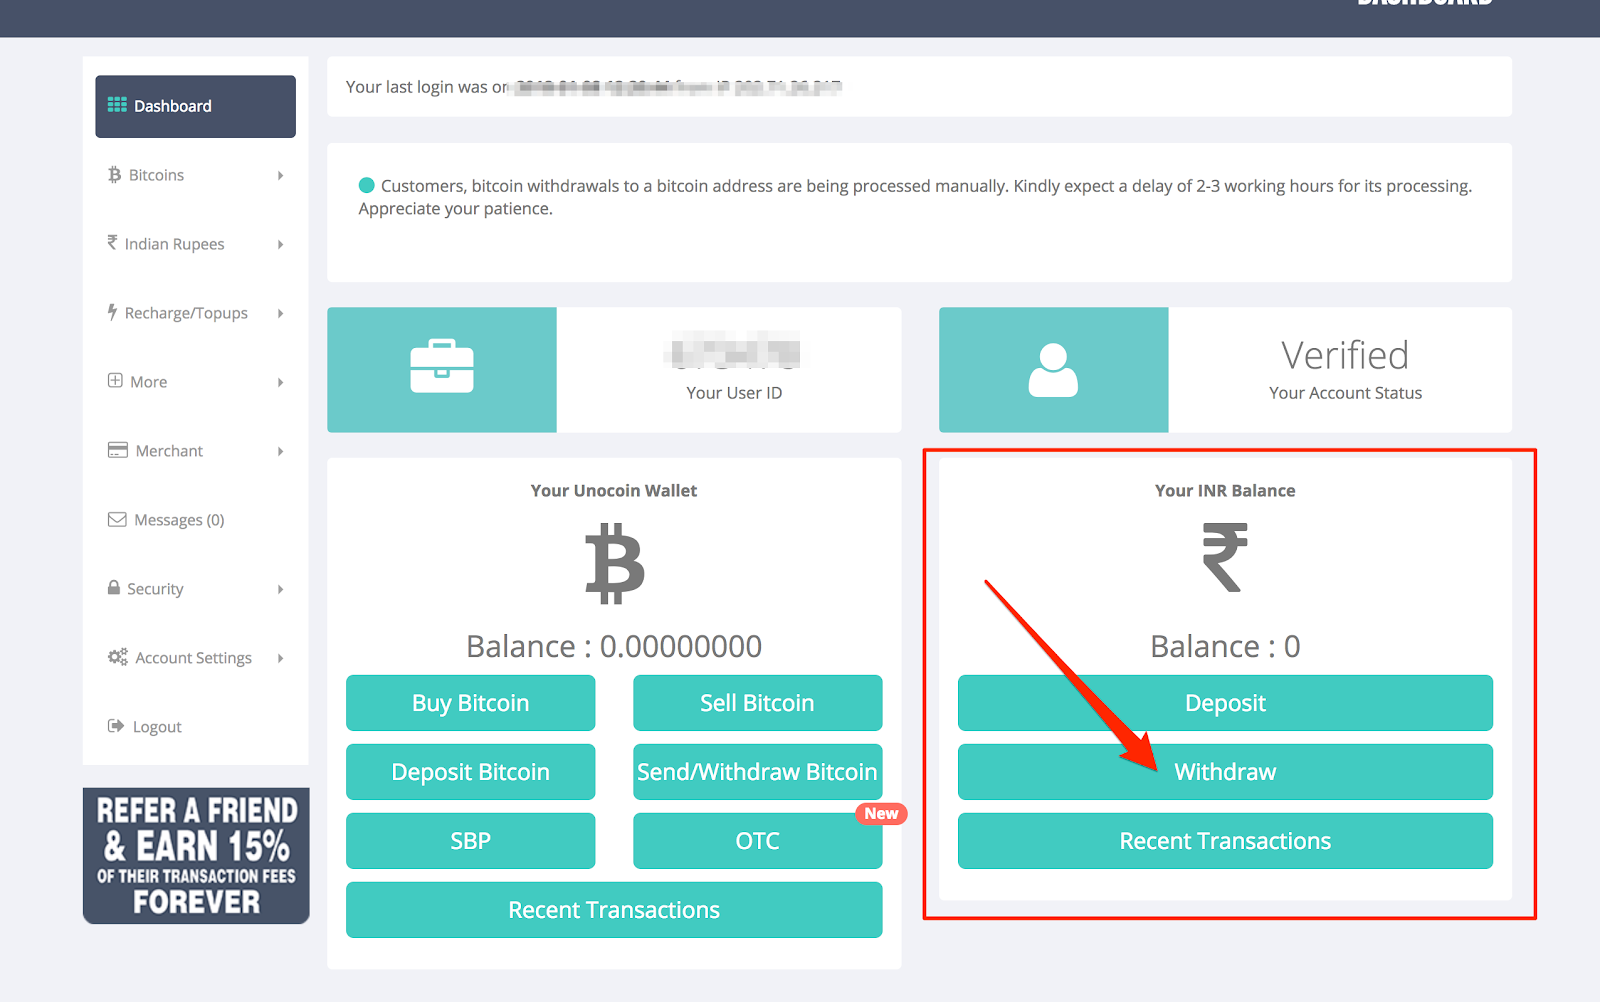 How to trade Bitcoin using Unocoin - India's leading Bitcoin company